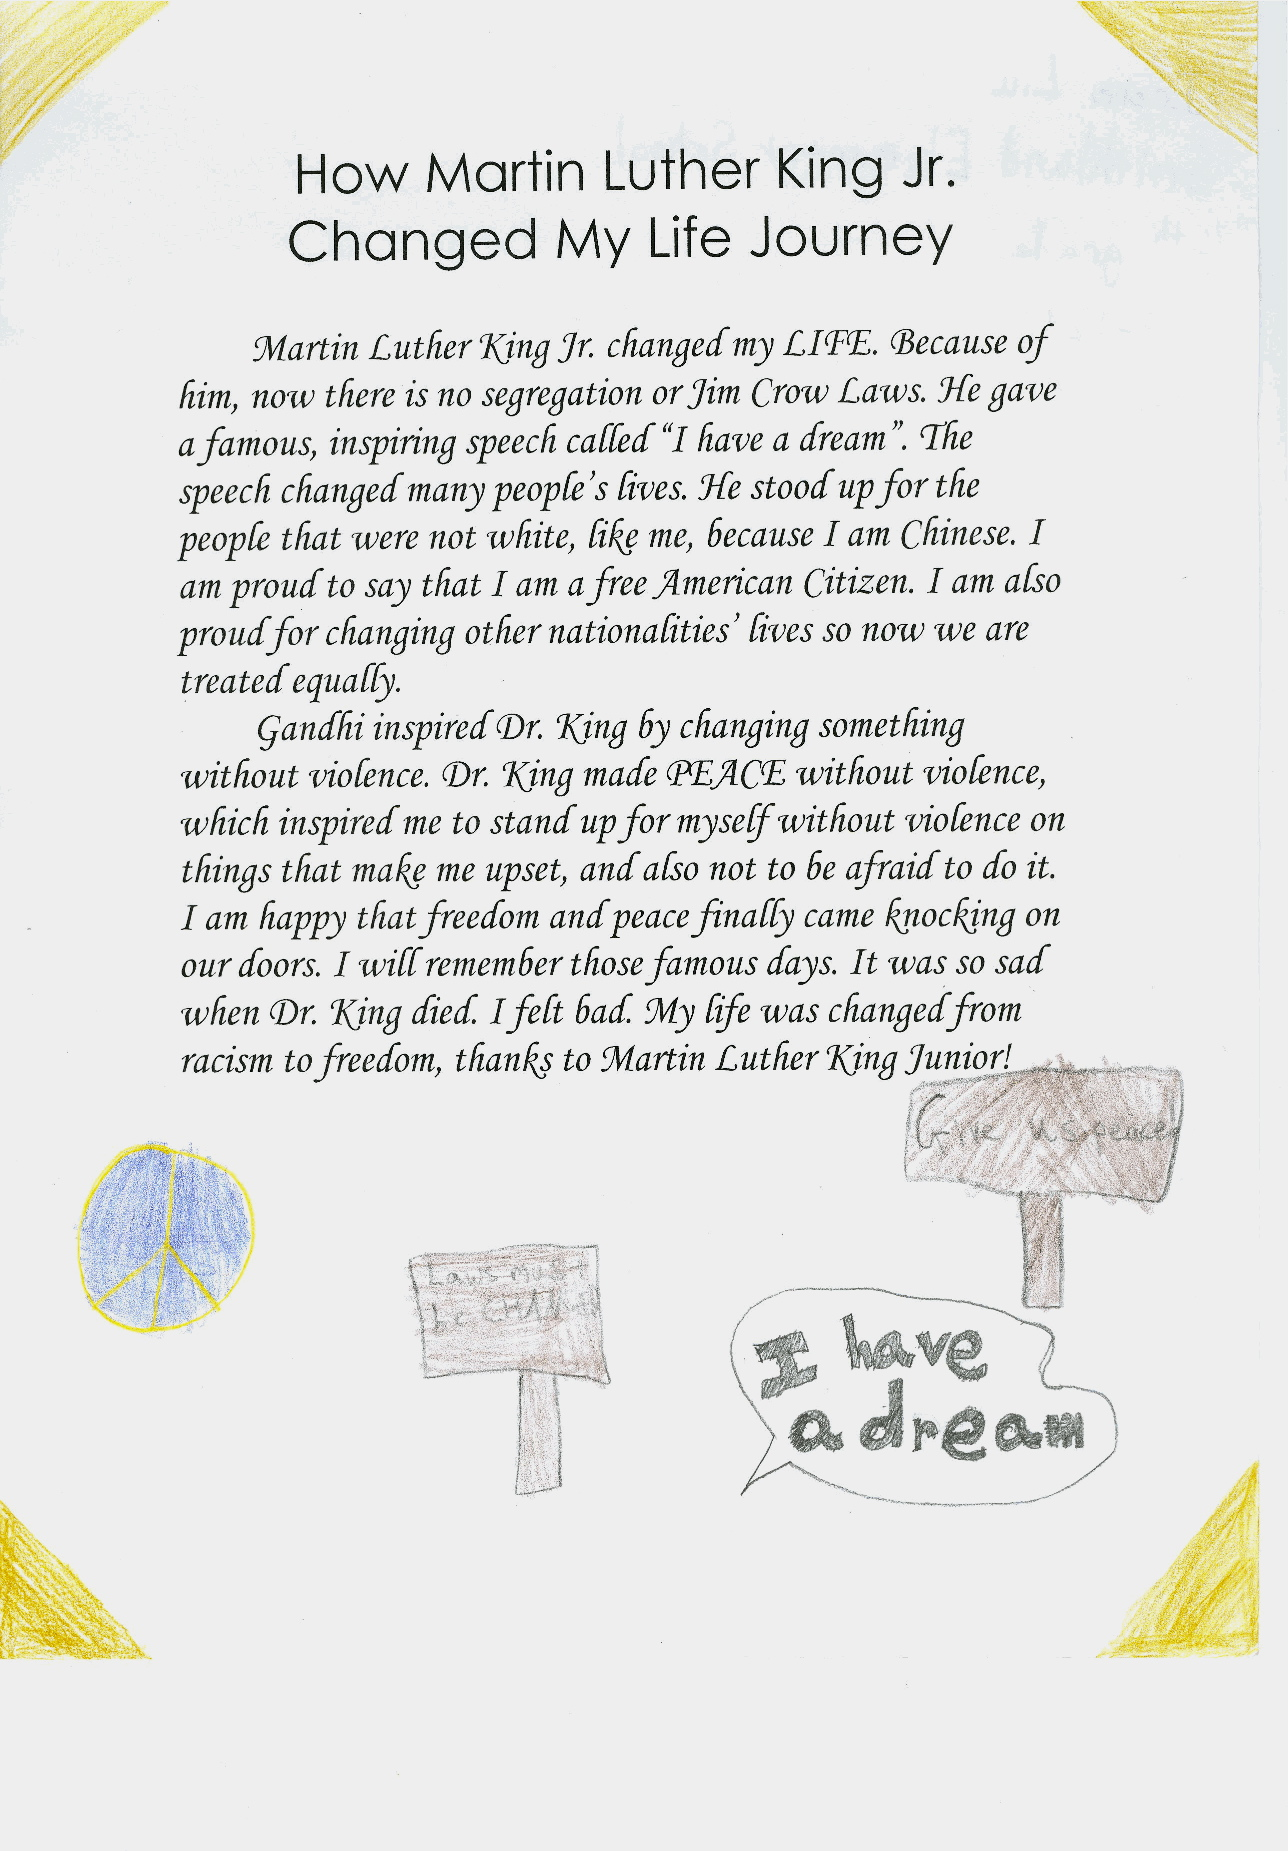 luther king i have a dream analysis essay martin luther king i have a dream analysis essay